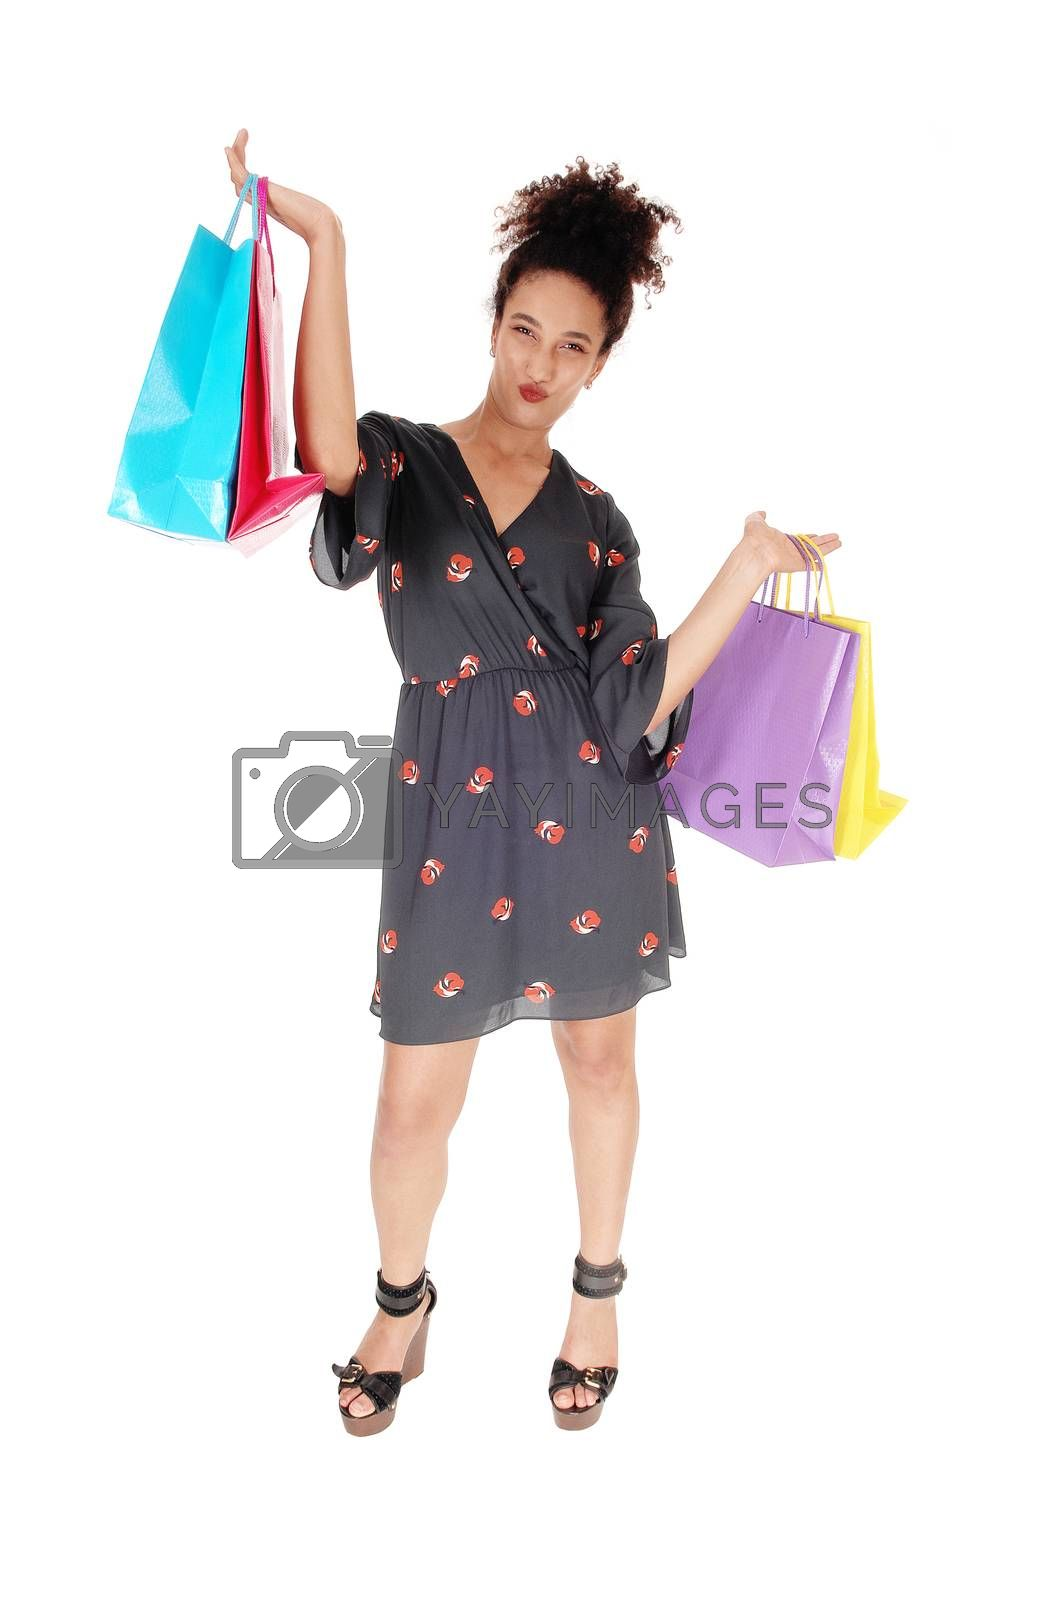 Happy young shopping woman with the bags lifted up by feierabend